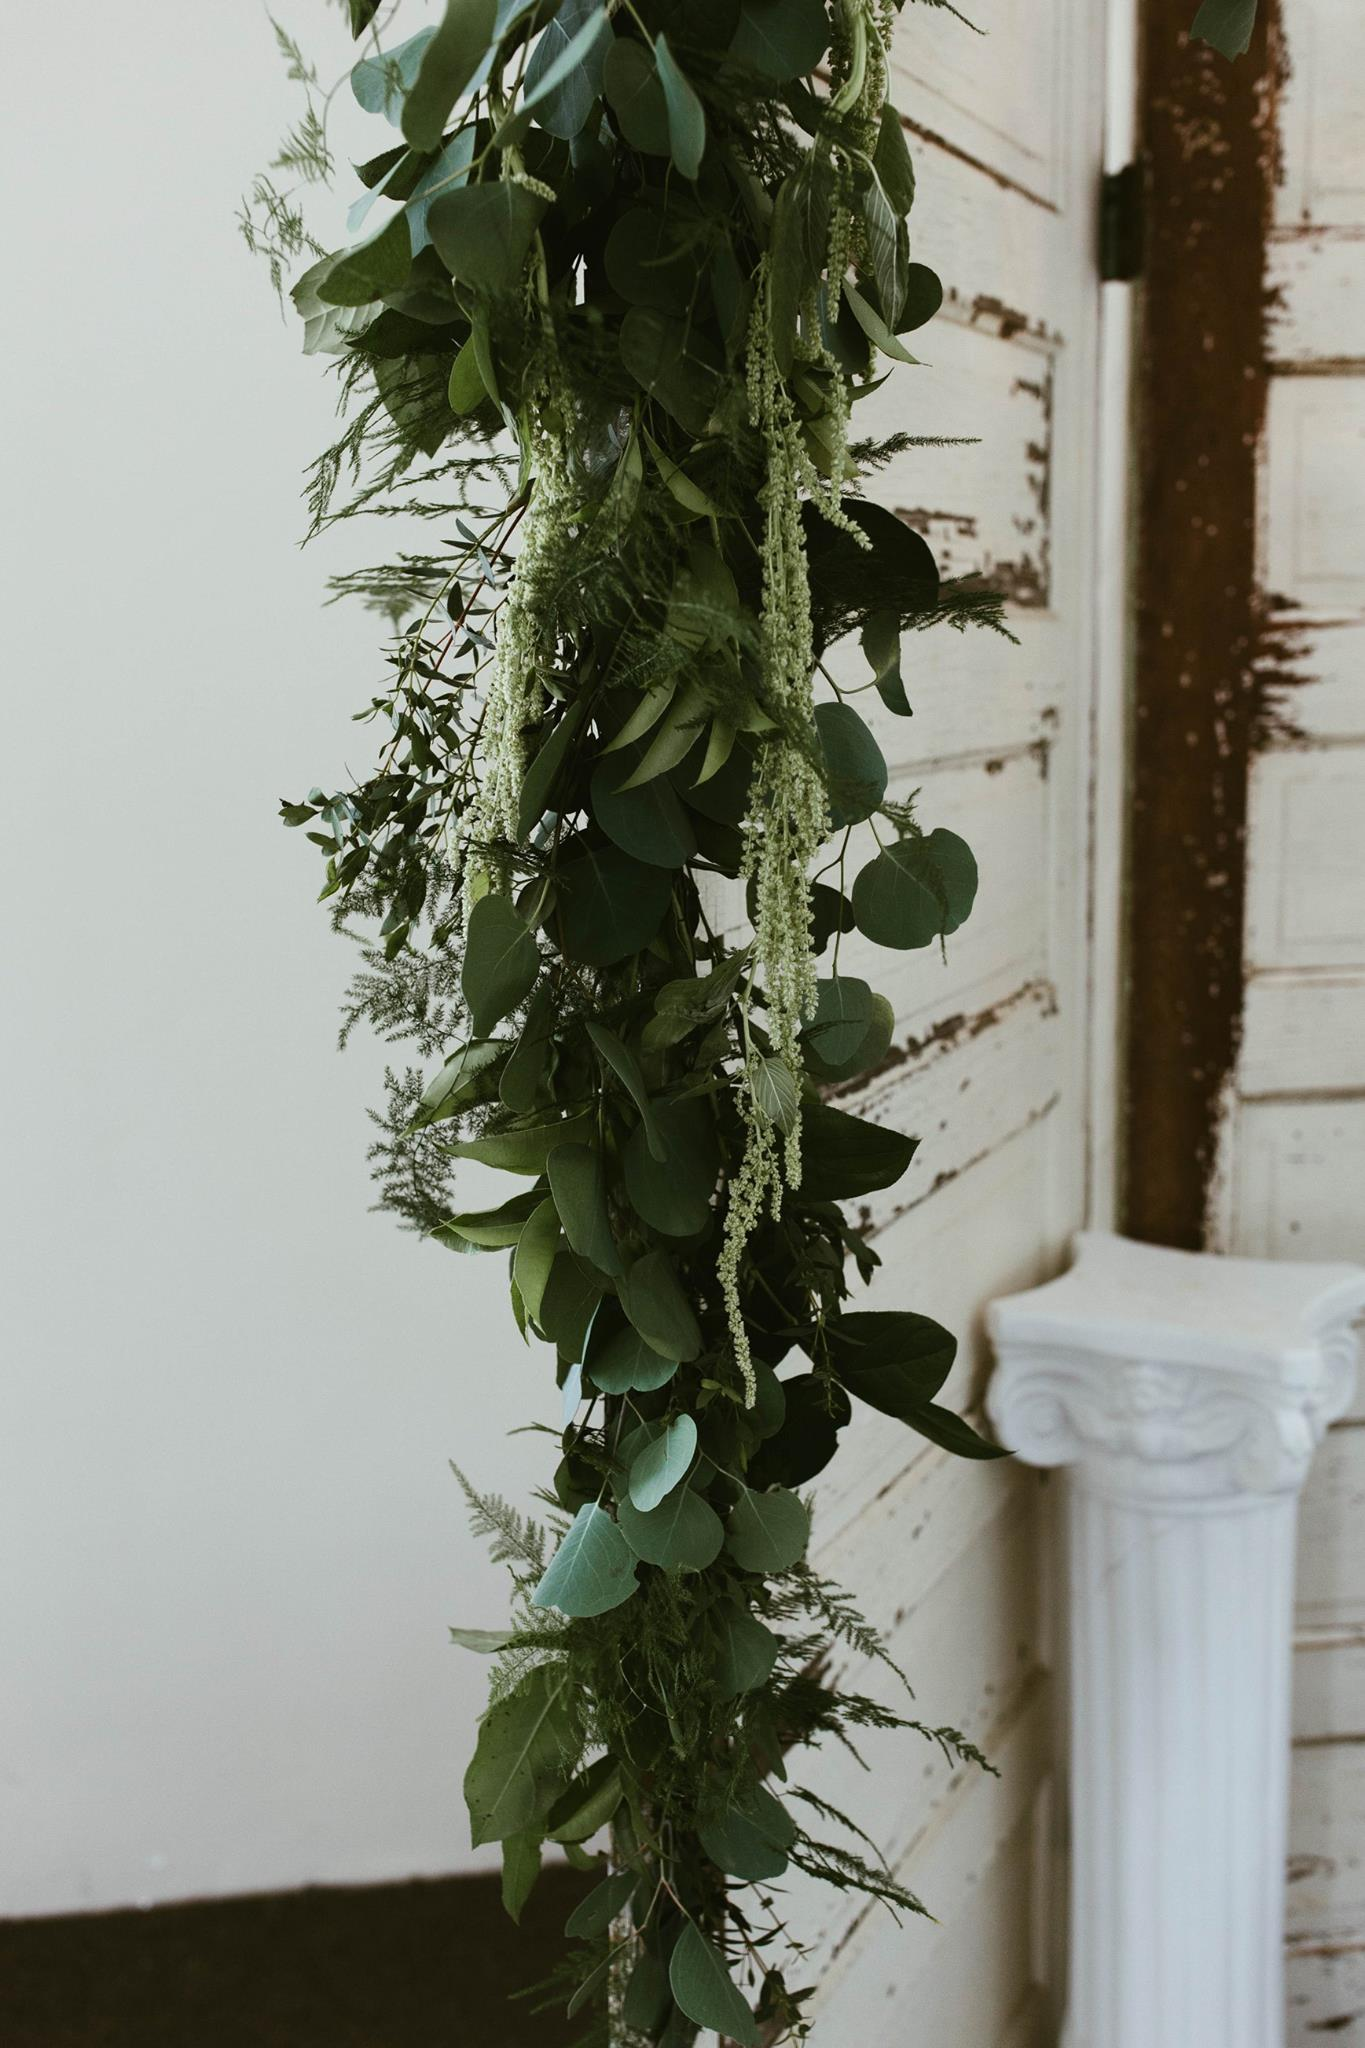 garlands - Our hand tied garlands typically use multiple long-lasting greens. Garlands for homes use dried elements, while garlands for events use fresh flowers.